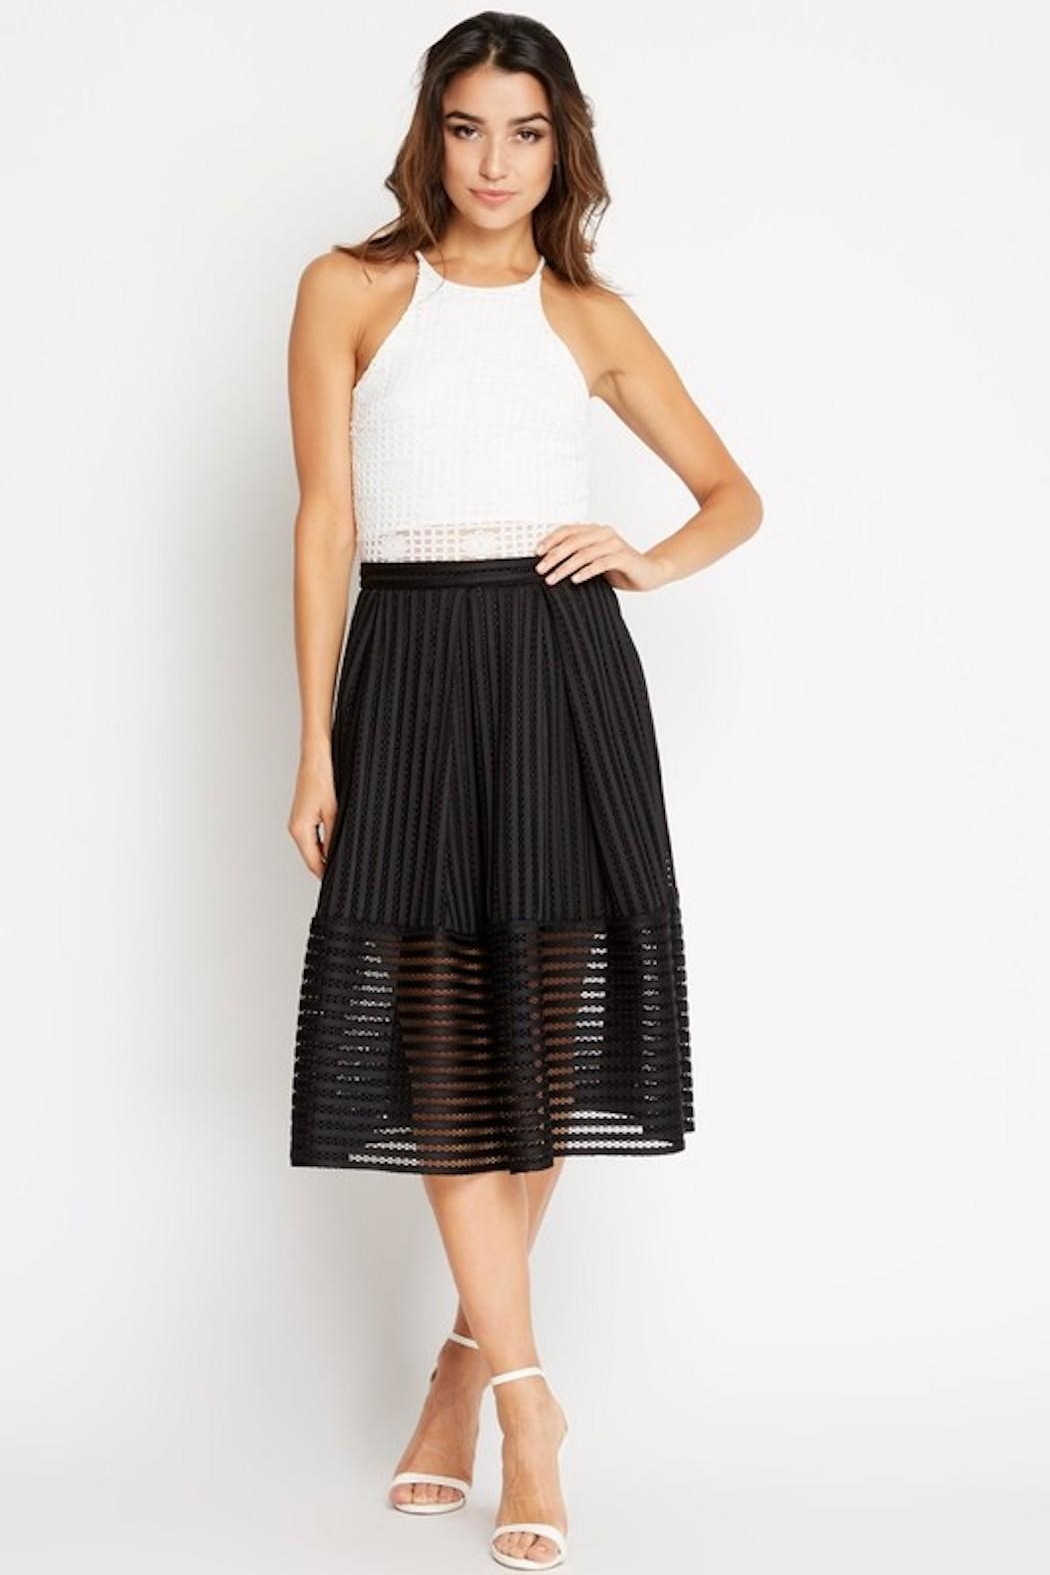 Soprano A-Line Black Skirt - Side Cropped Image